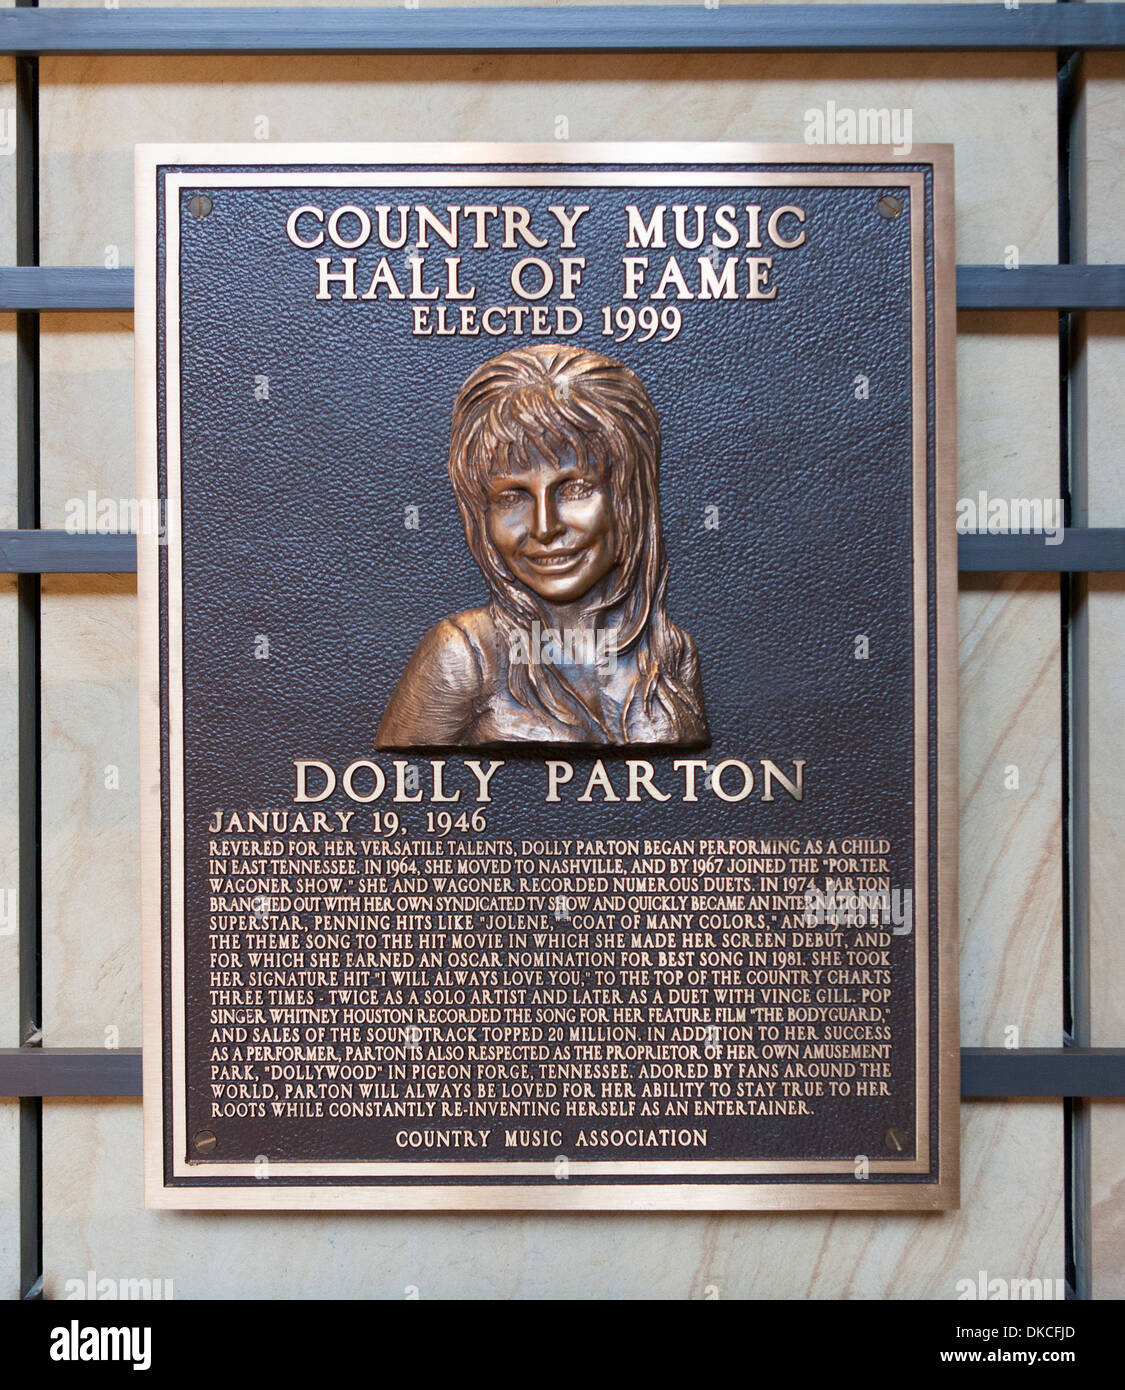 A Bronzetafel von Dolly Parton in die Country Music Hall Of Fame in Nashville, TN, USA Stockbild